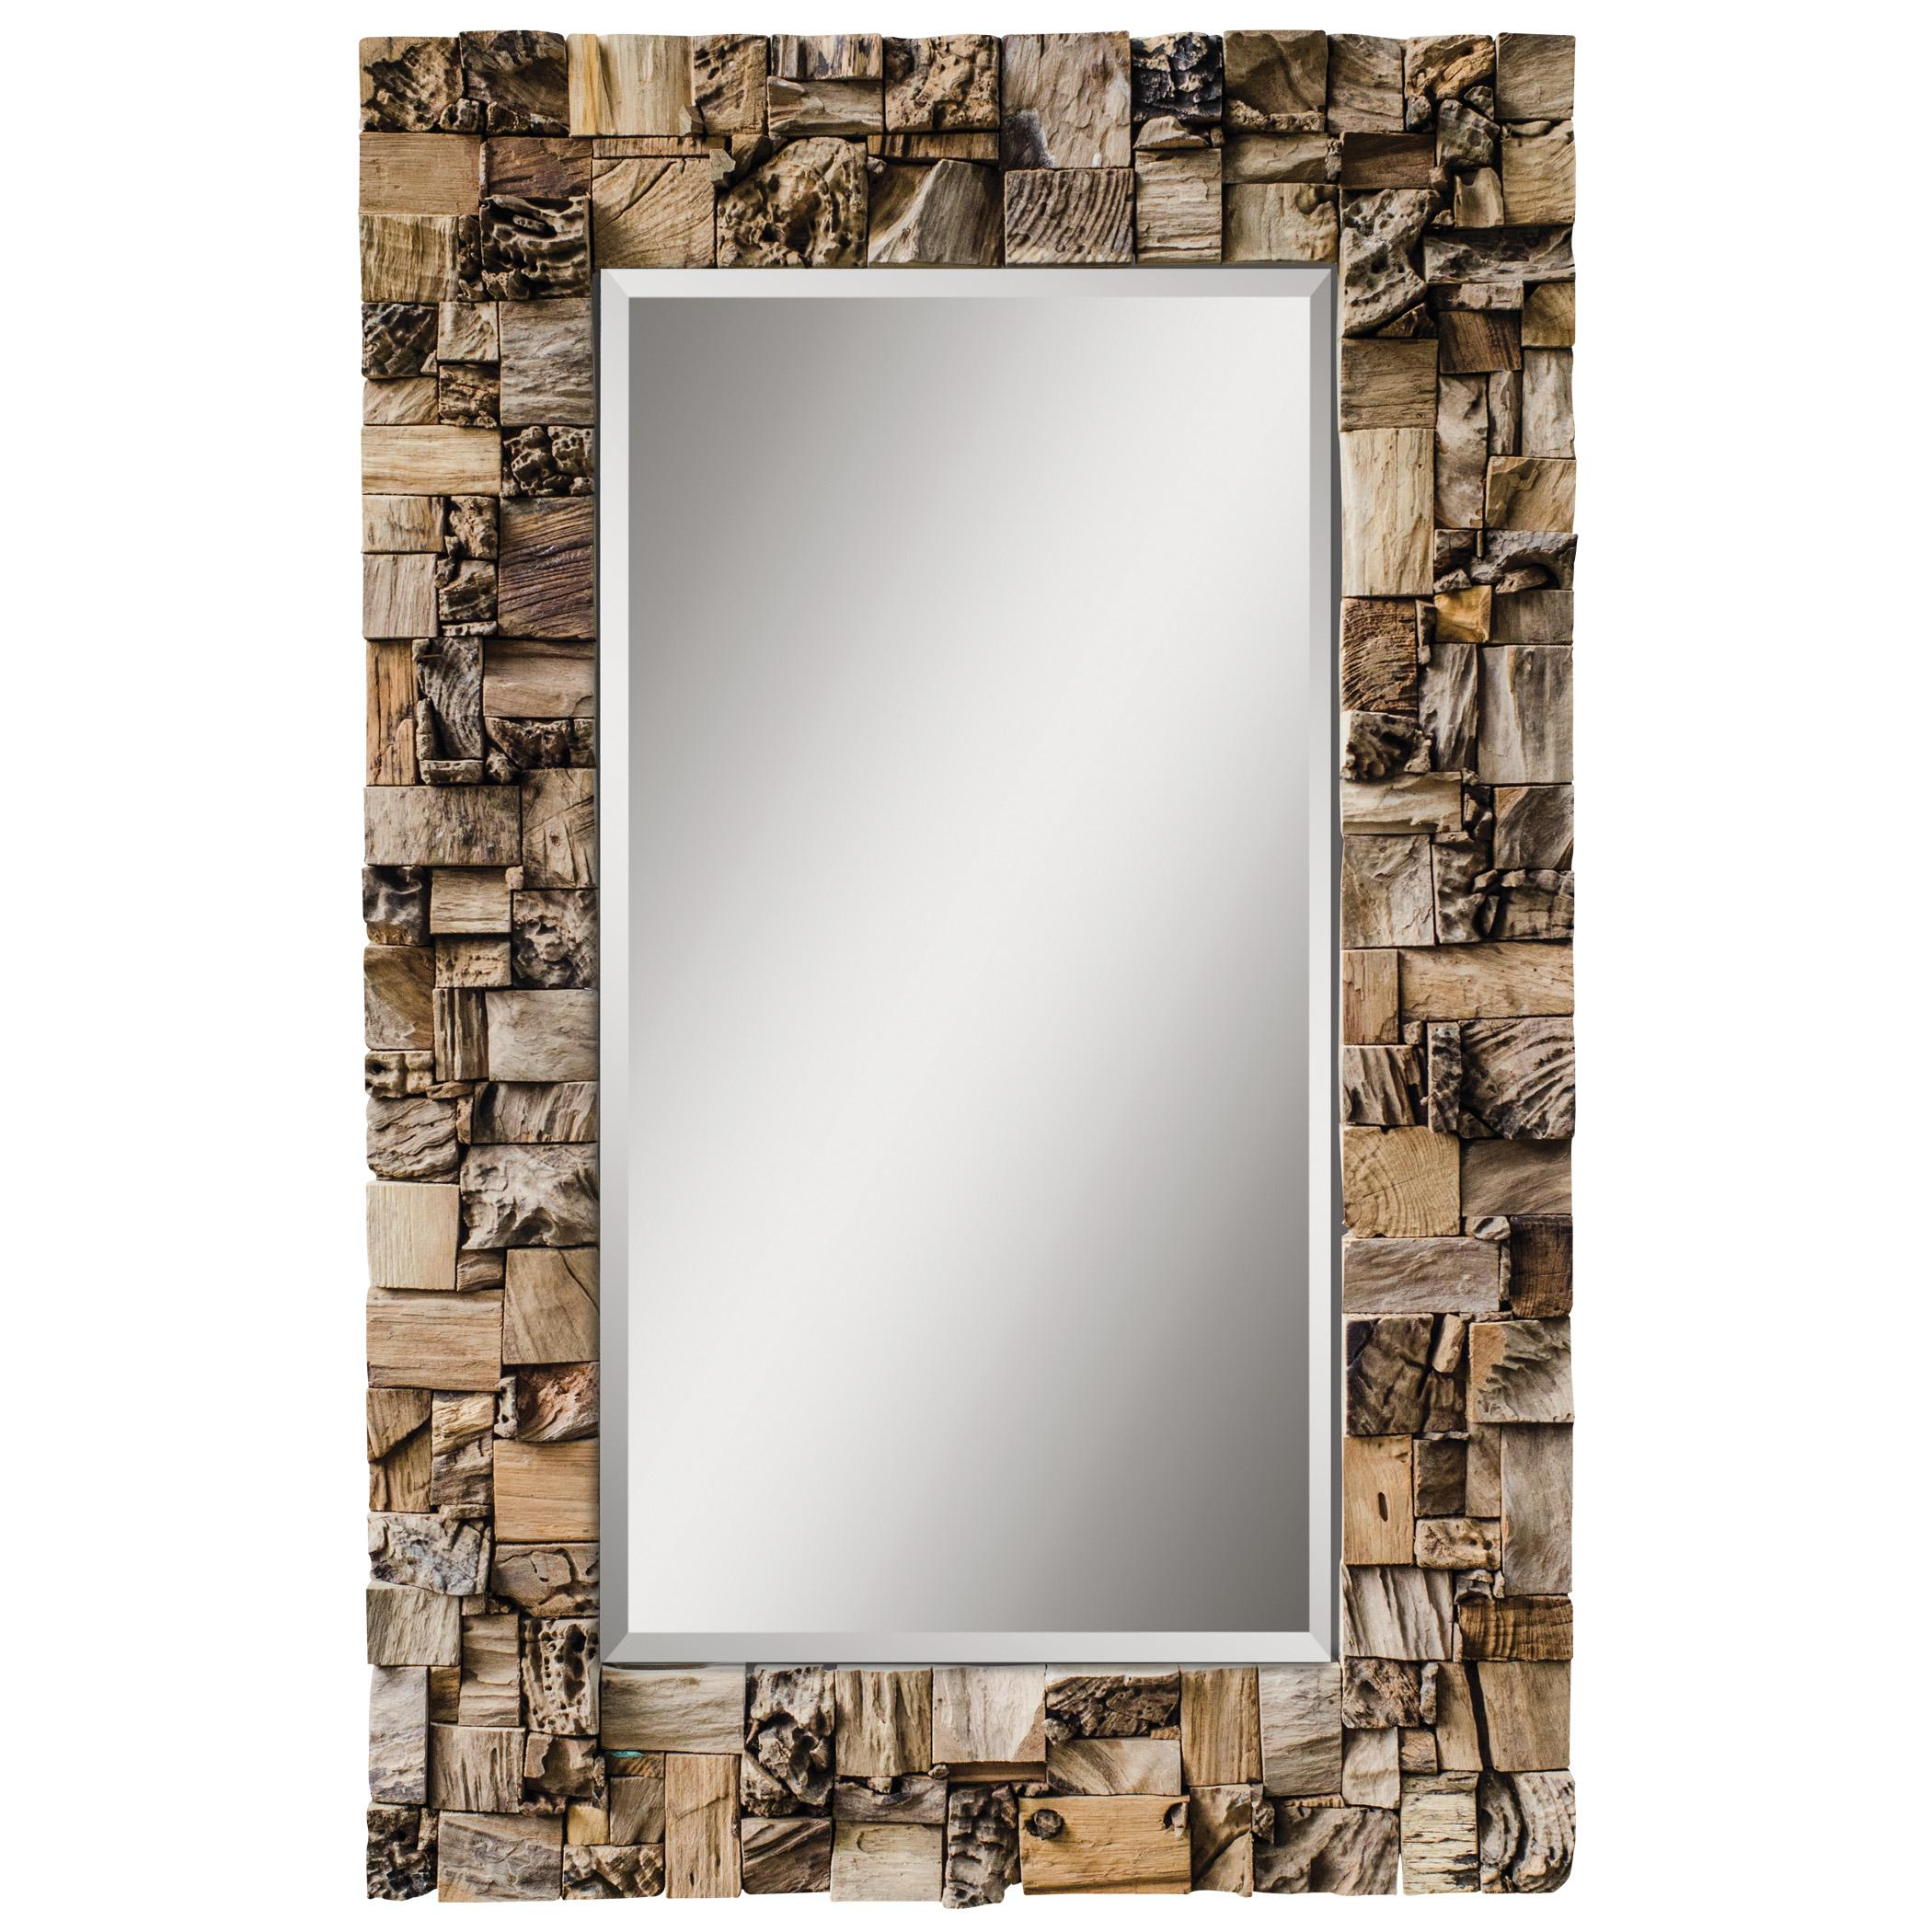 Uttermost Mirrors Thatcher Teak Root Mirror - Item Number: 05031